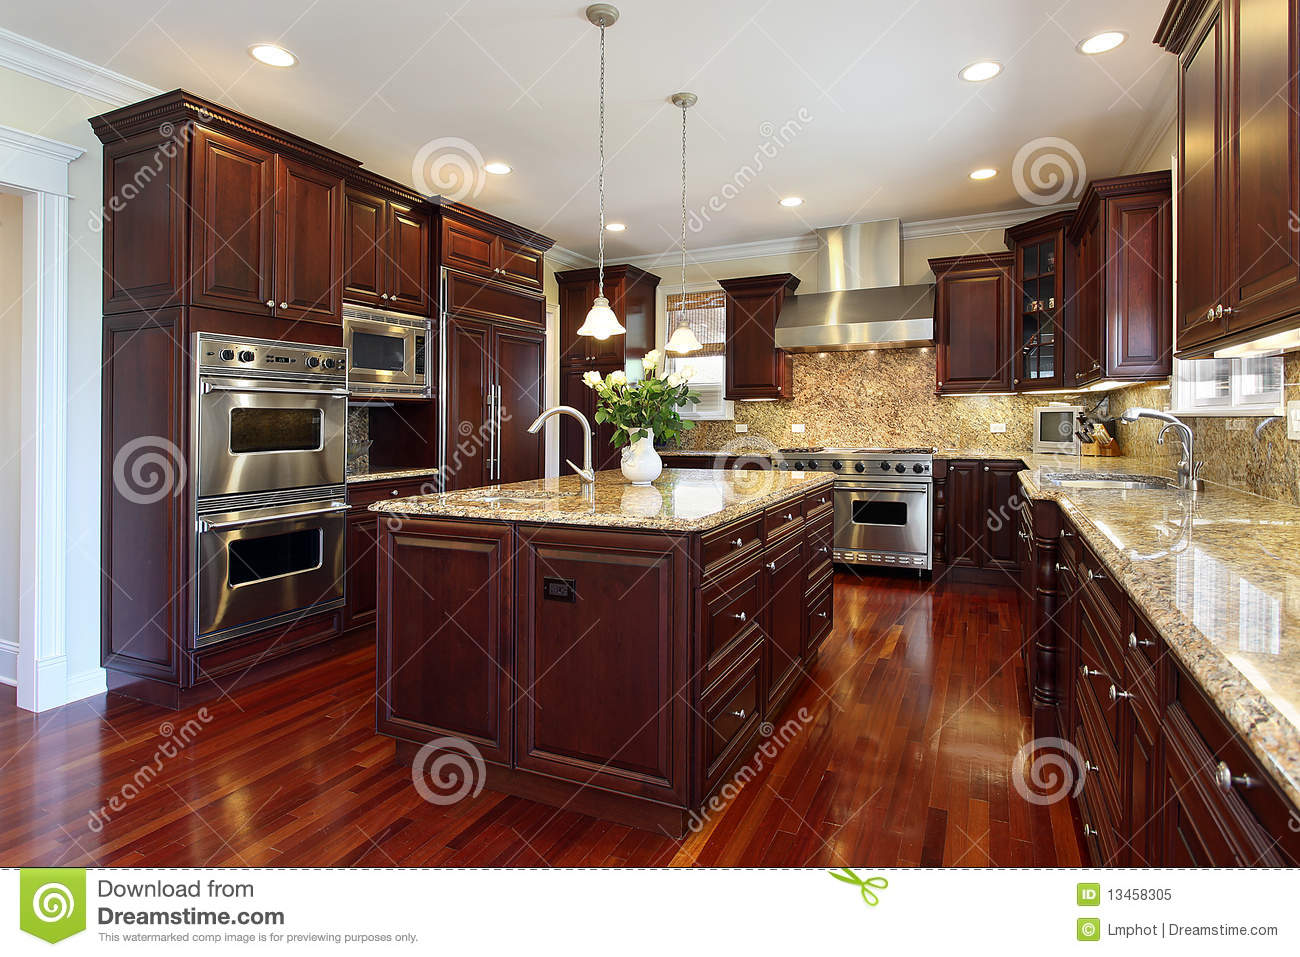 Kitchen With Cherry Wood Cabinetry Royalty Free Stock